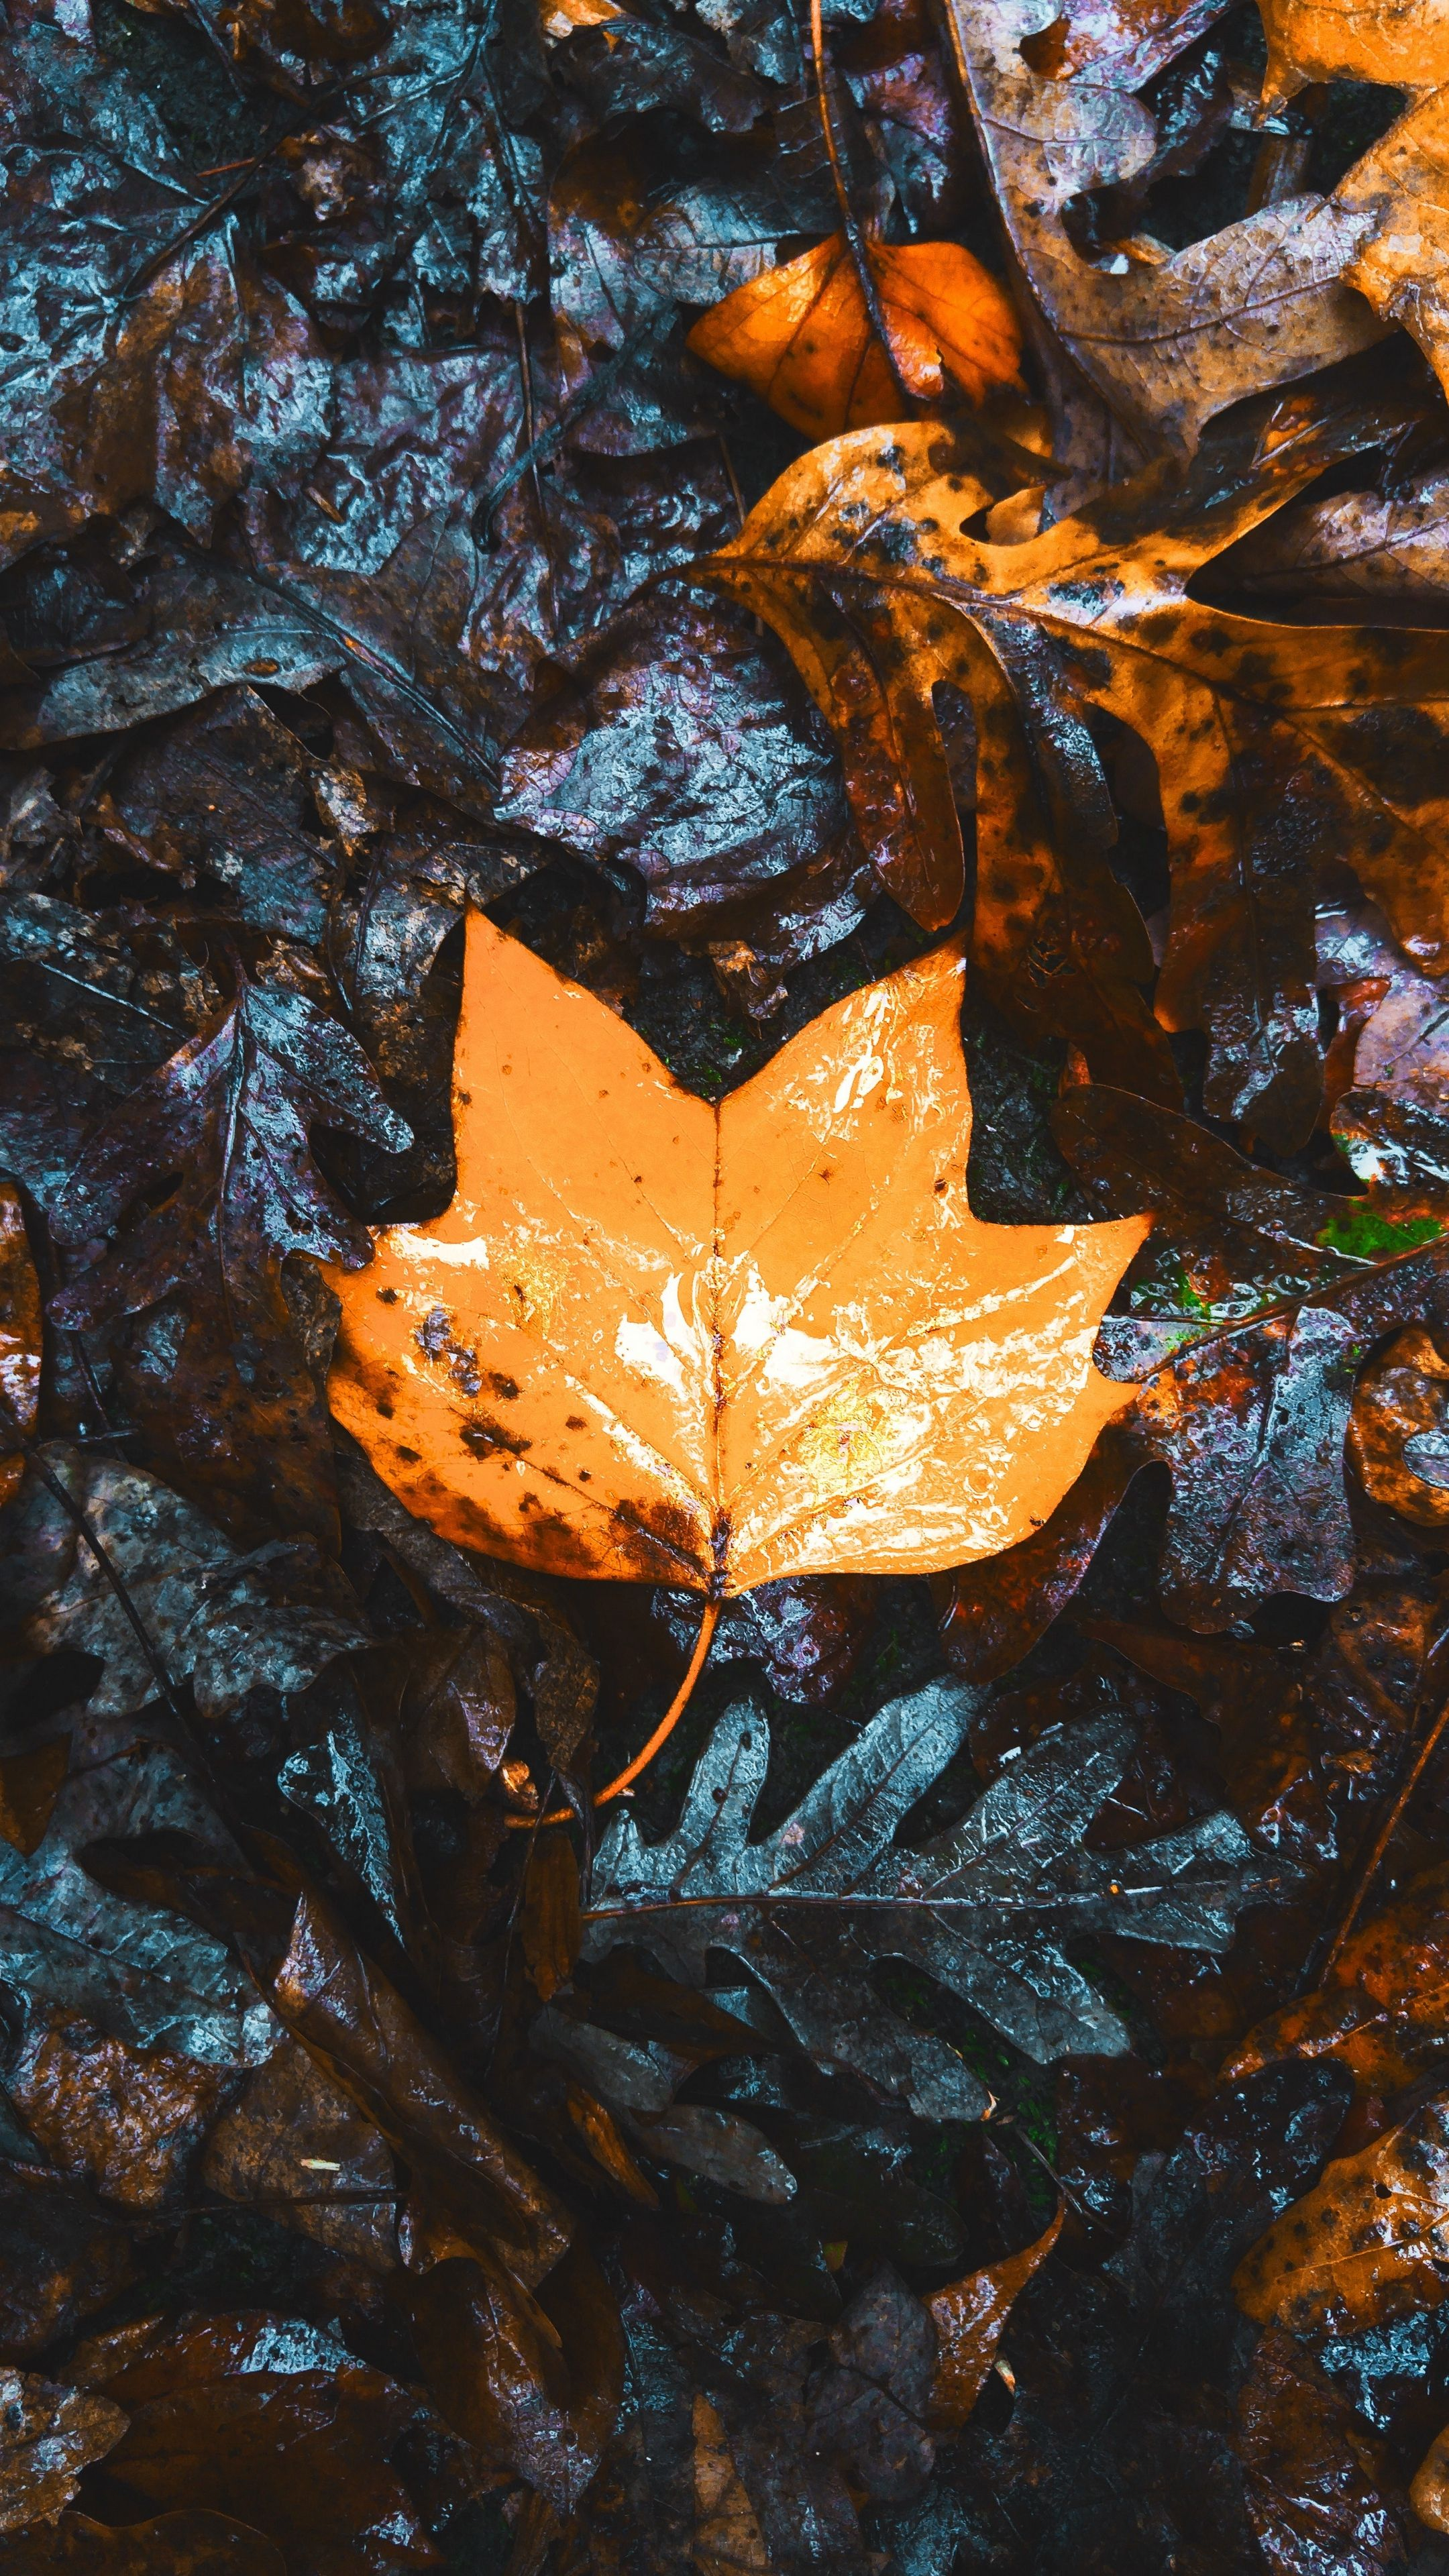 Nature Maple Leaves Autumn Wallpapers Hd 4k Background For Android Christmas Wallpaper Iphone Tumblr Iphone Wallpaper Vintage Wallpaper Iphone Summer